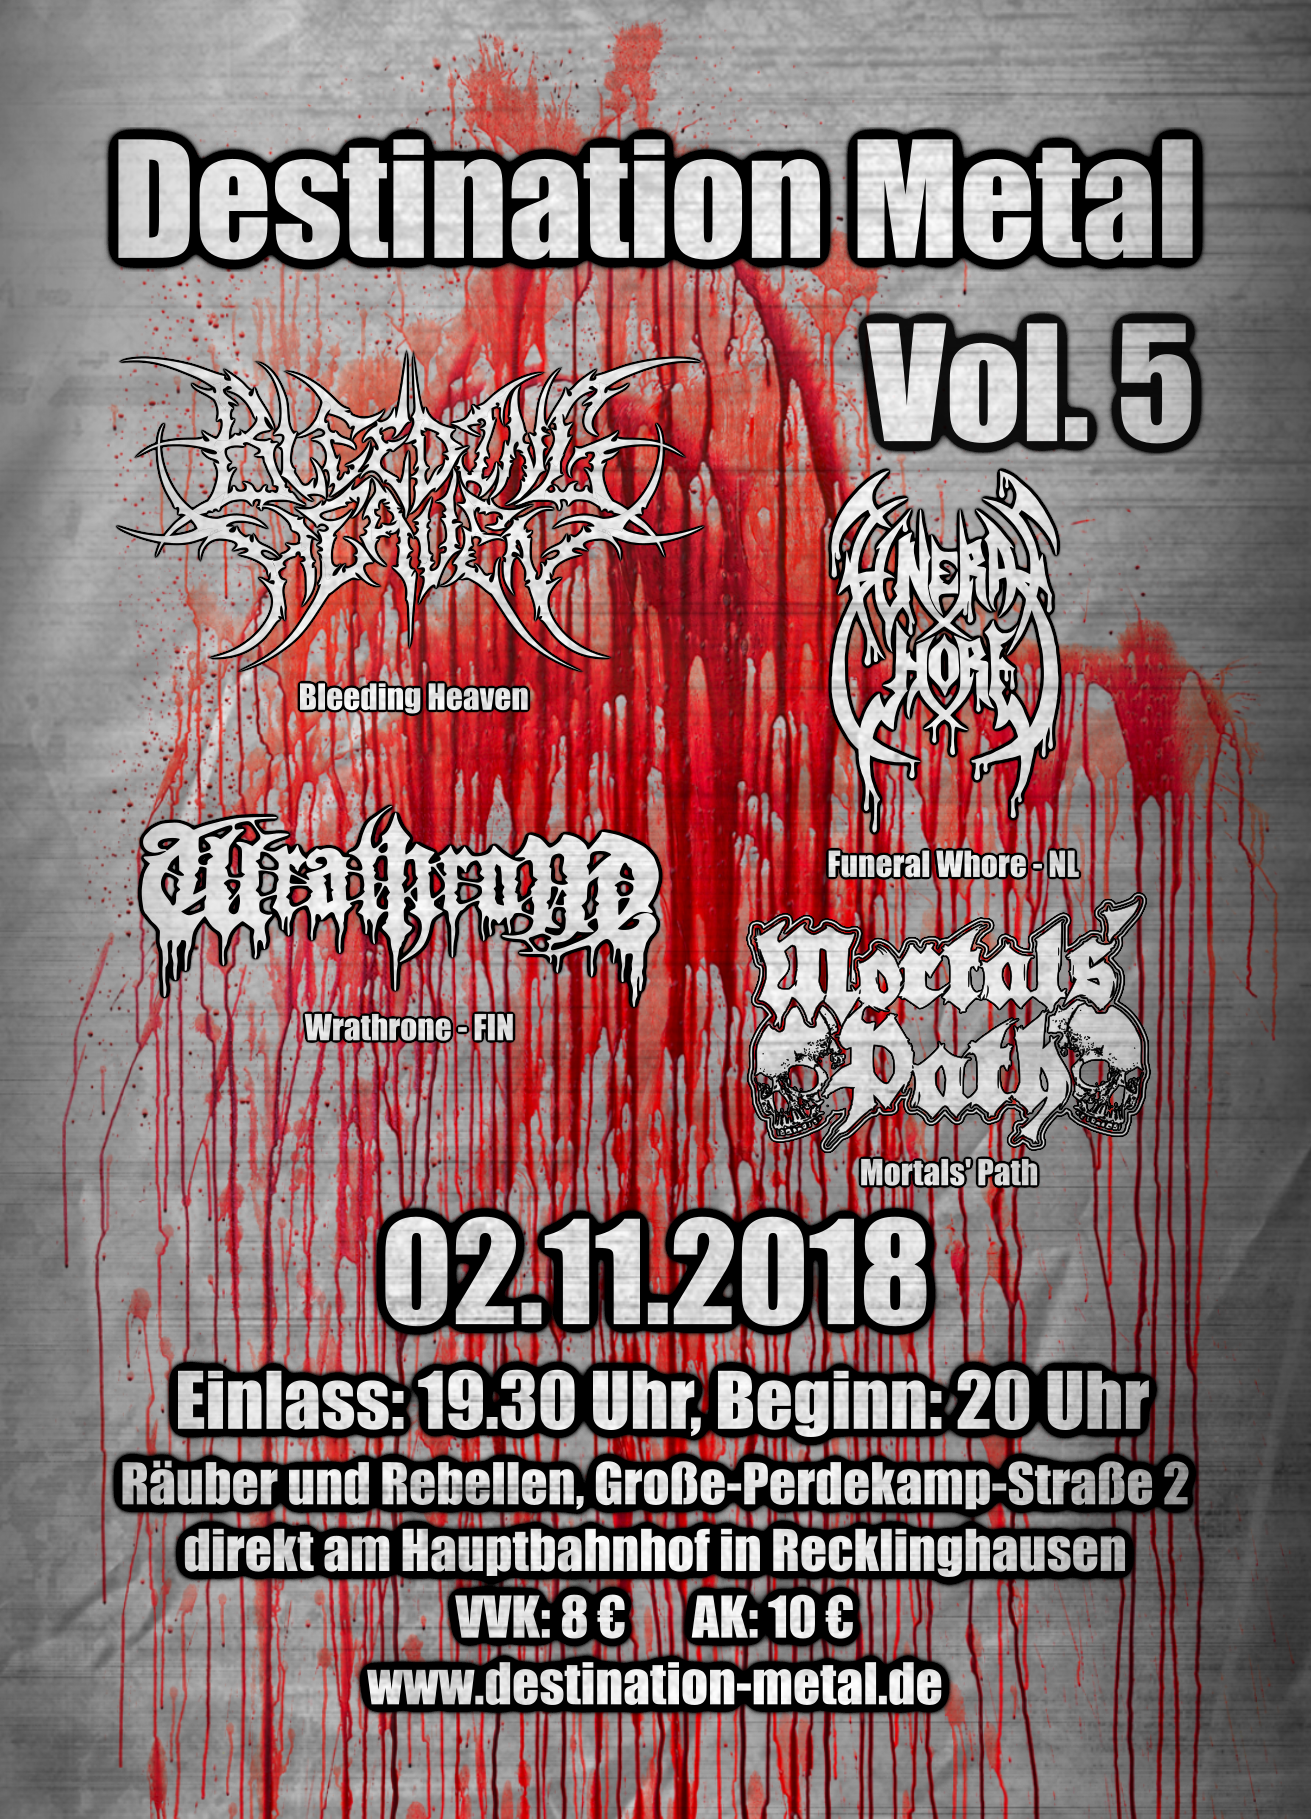 Destination Metal Vol. 5